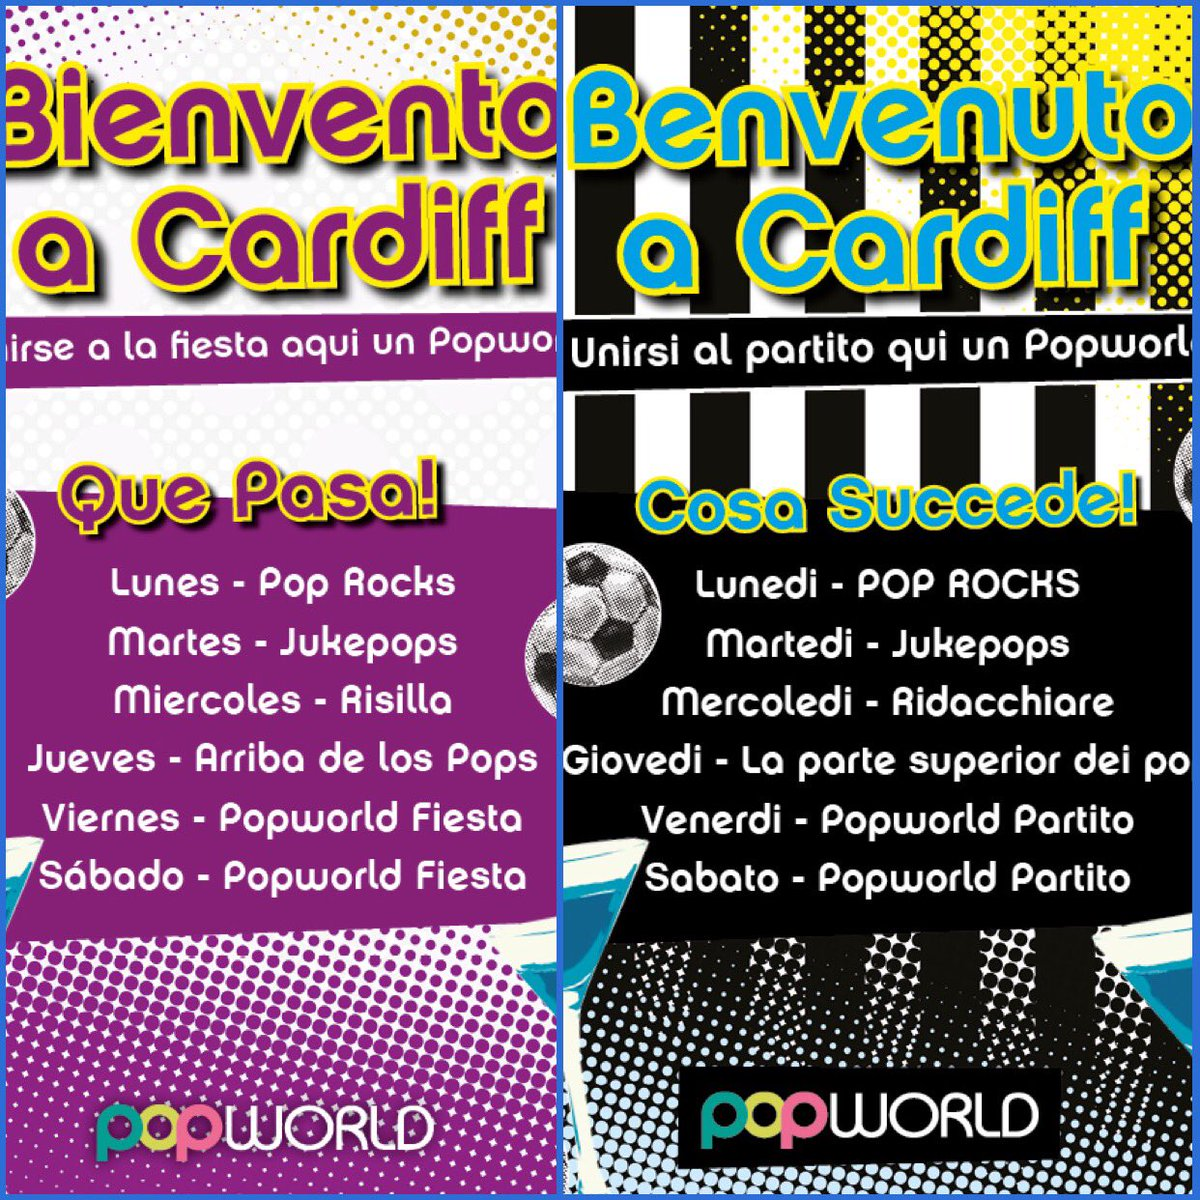 Next week the champions league comes to Cardiff. We have lots lined up for you so join the party  #realmadrid #juventusFC #cardiff2017<br>http://pic.twitter.com/zRLI82NHUN